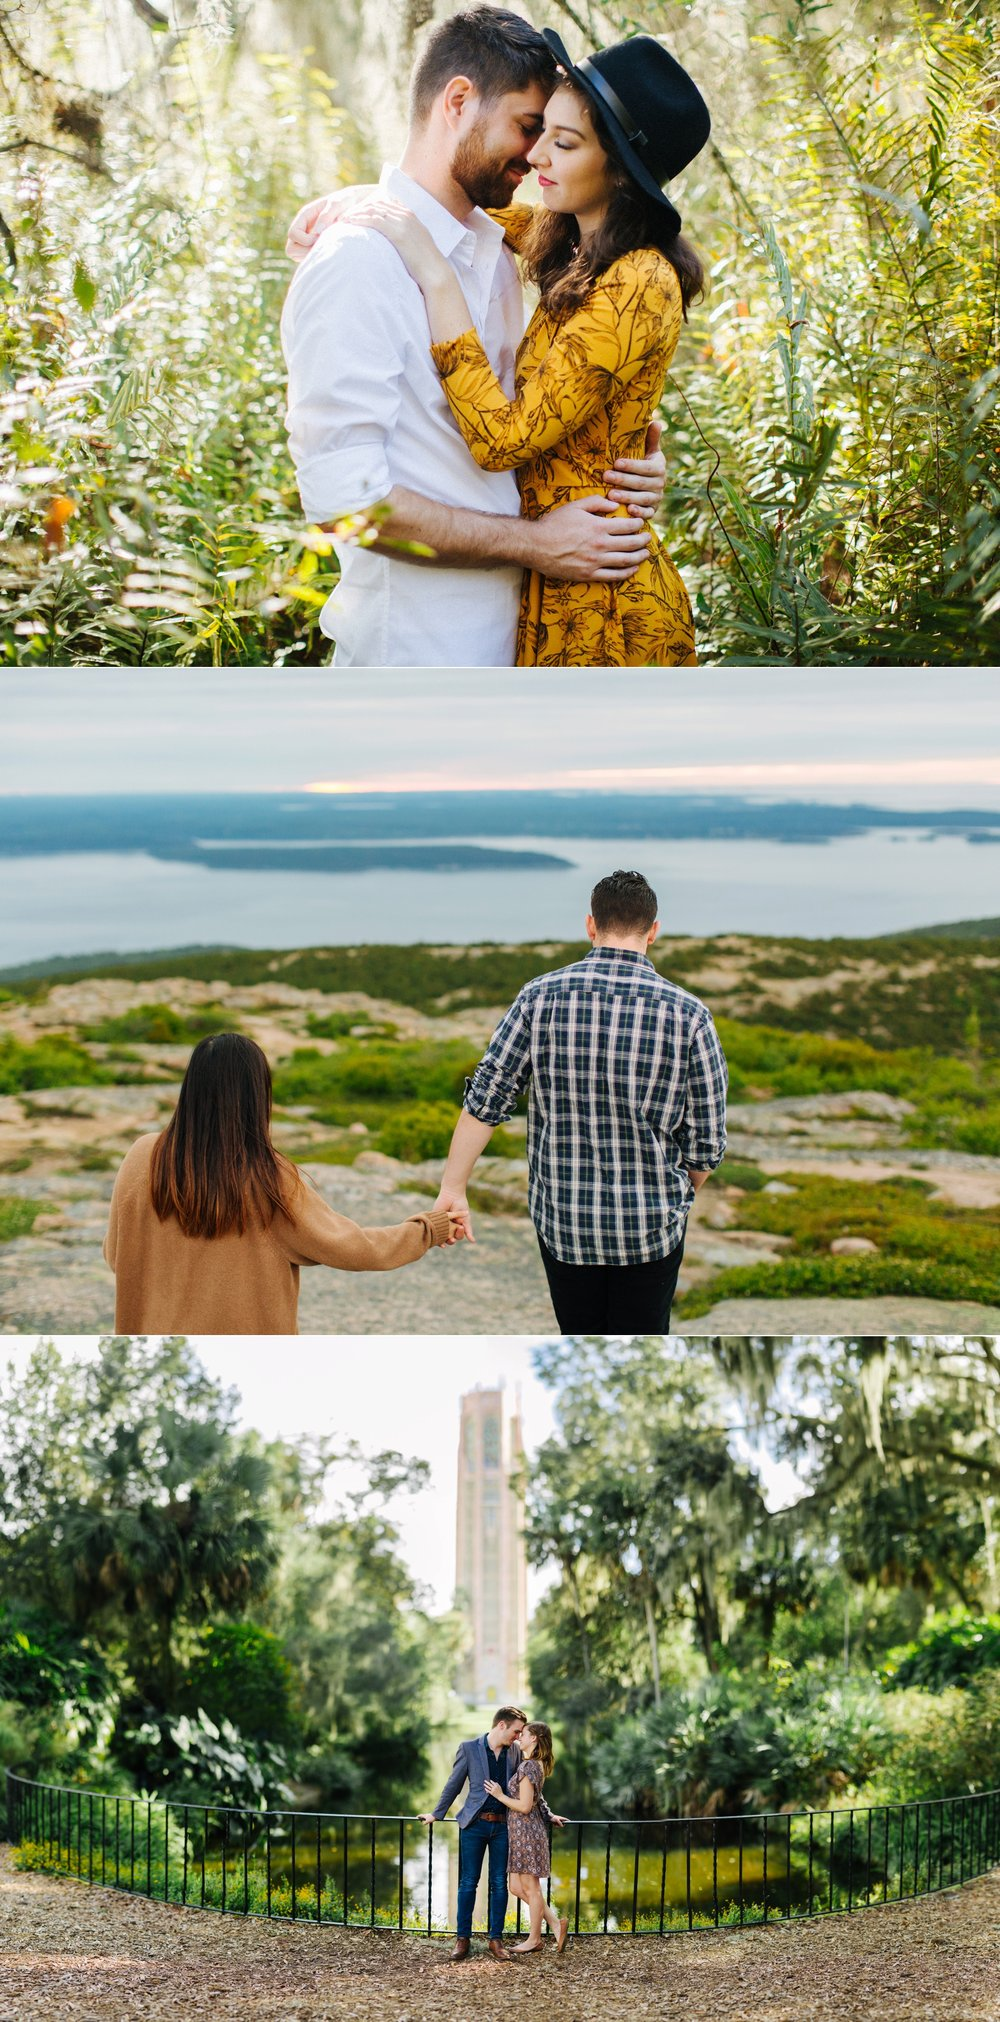 Jake & Katie Photography Best of Couples 2016-009.jpg